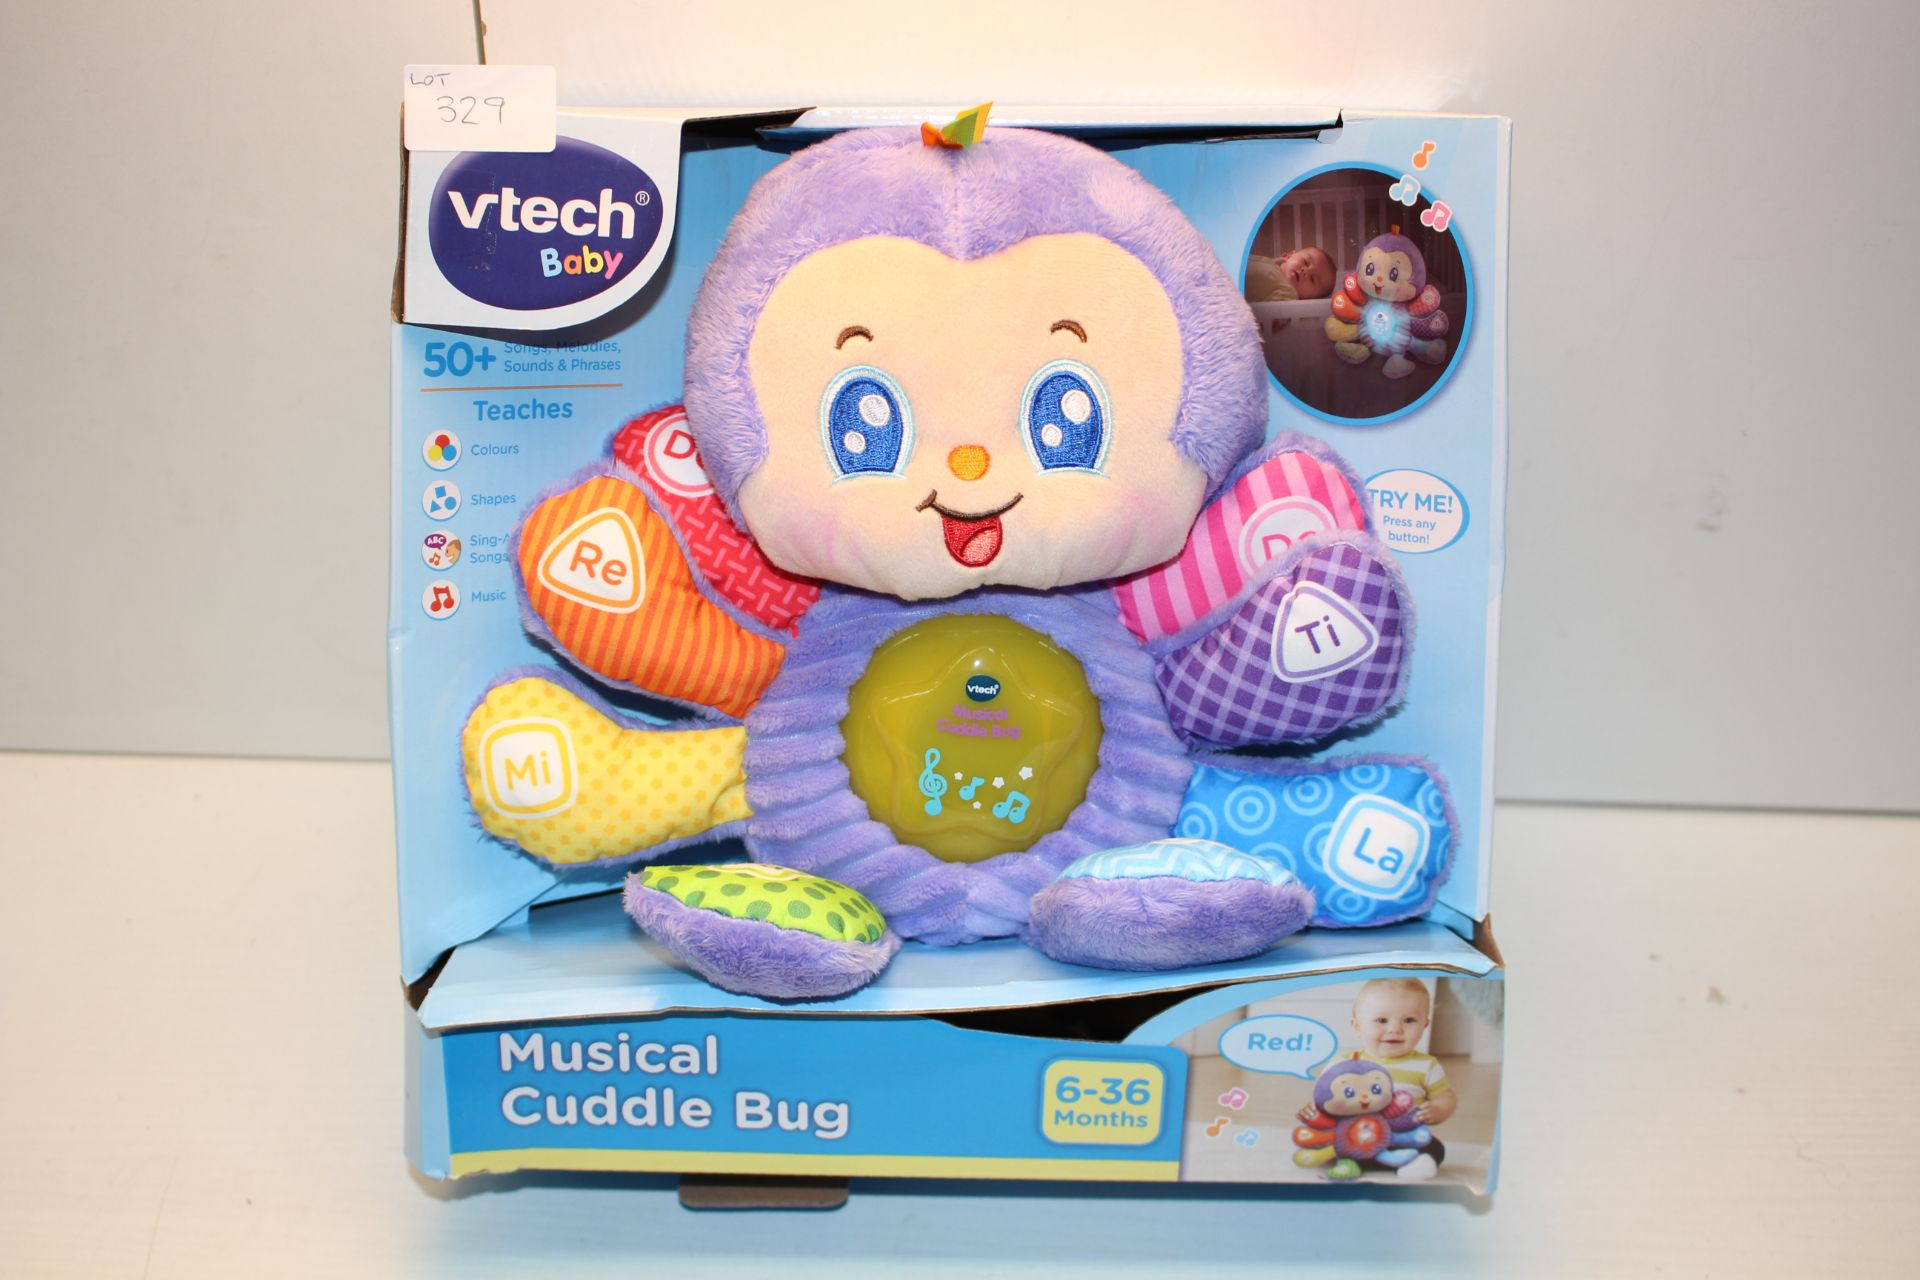 BOXED VTECH BABY MUSICAL CUDDLE BUG Condition ReportAppraisal Available on Request- All Items are